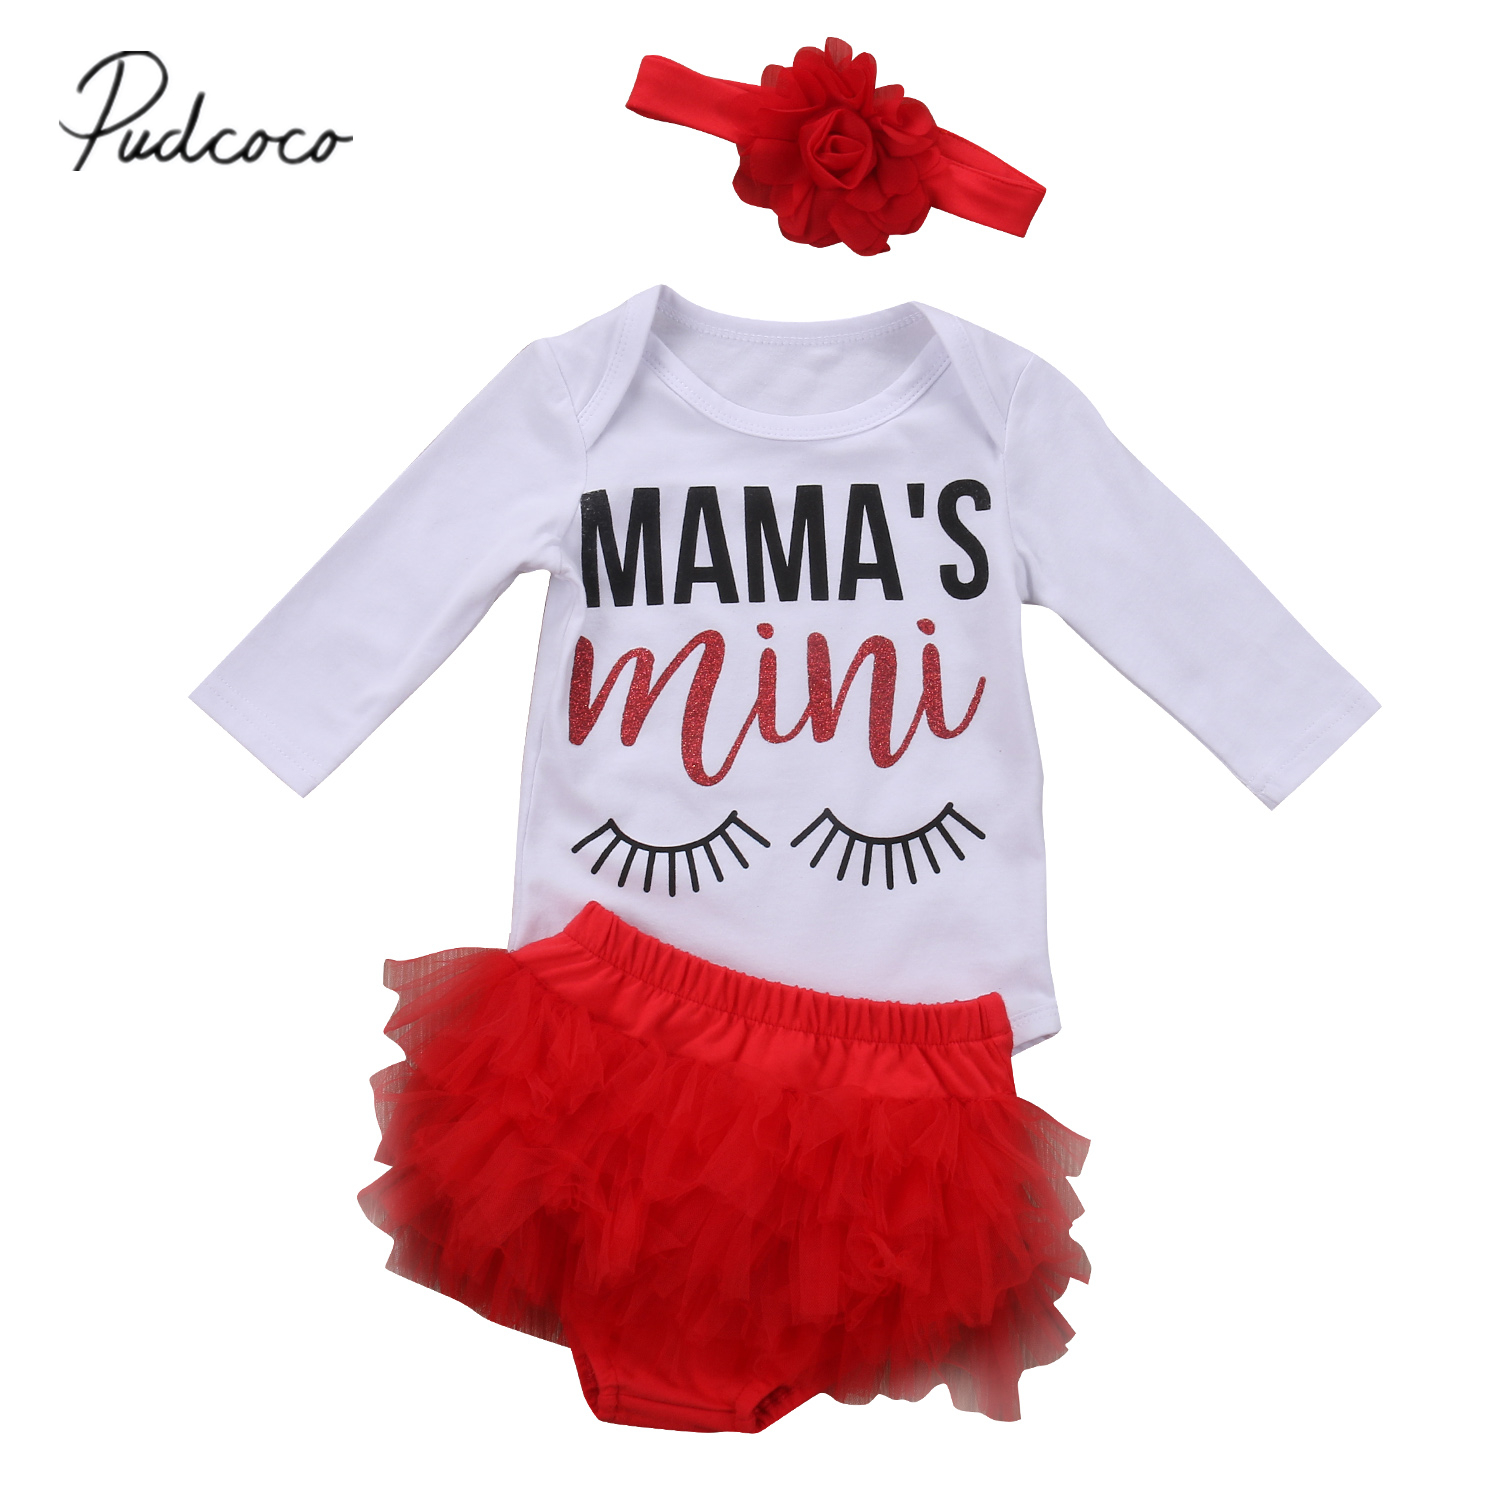 Pudcoco 2017 Newborn Baby Girls Long Sleeves Mini Rompers+Tutu Lace Red Shorts Ruffle Outfits Clothes 0-24M